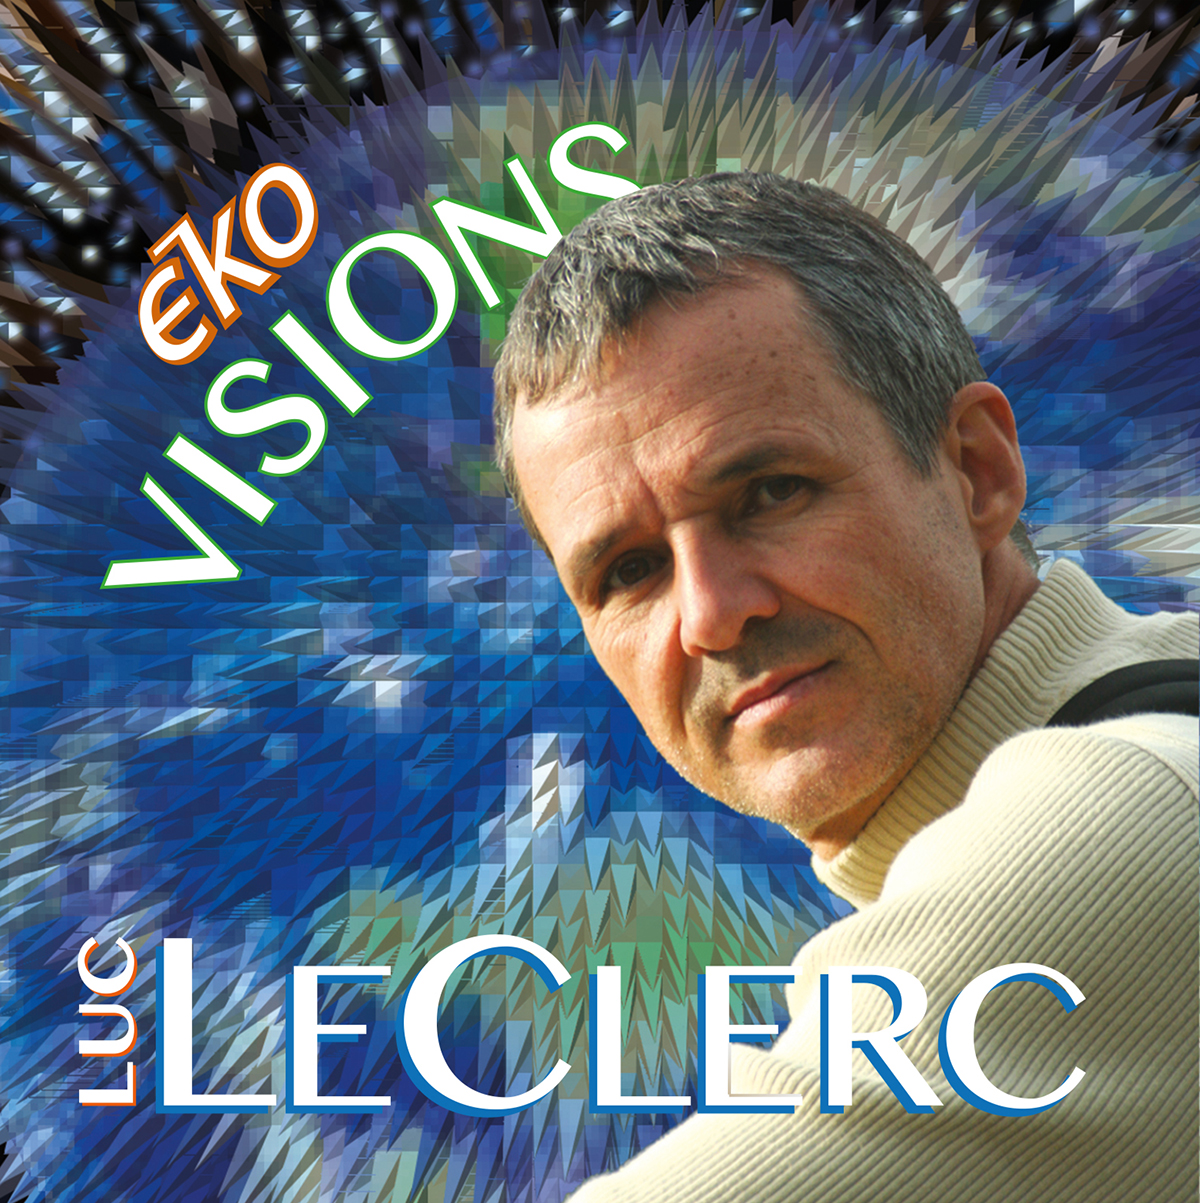 , ÉKO-VISIONS, ALBUM CD DE LUC LECLERC, Nature2Art.com